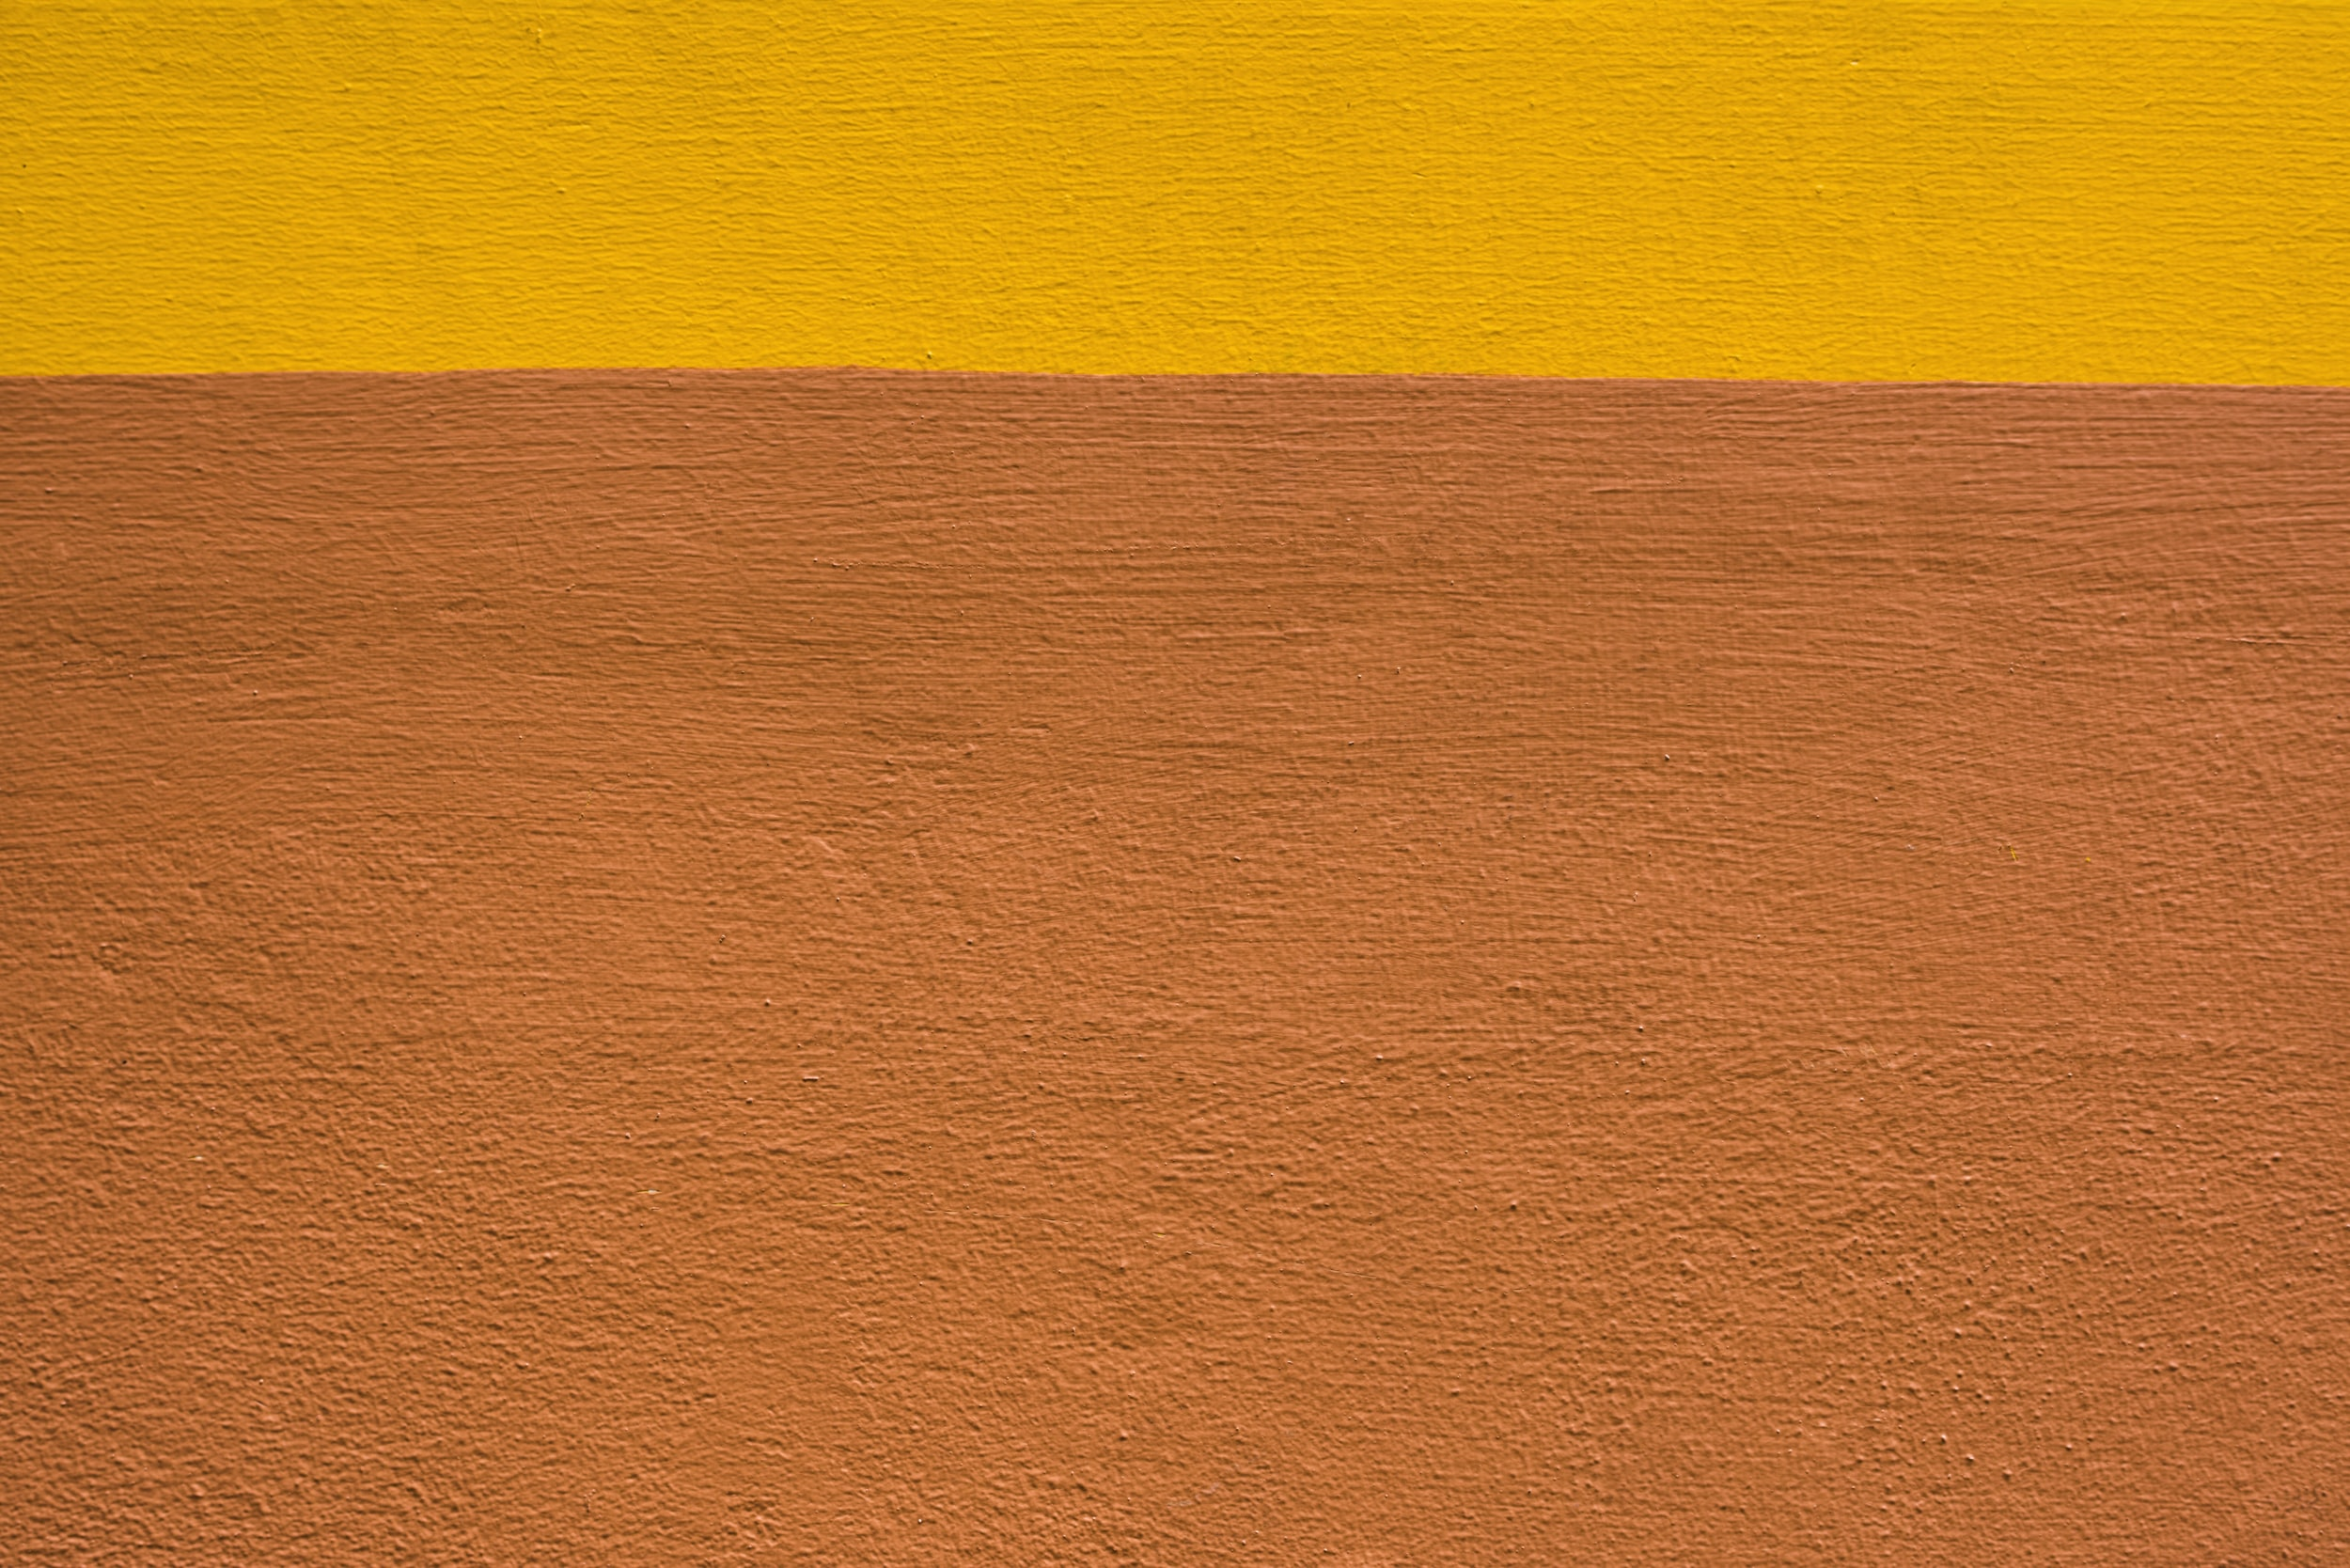 closeup of yellow and brown wall paint